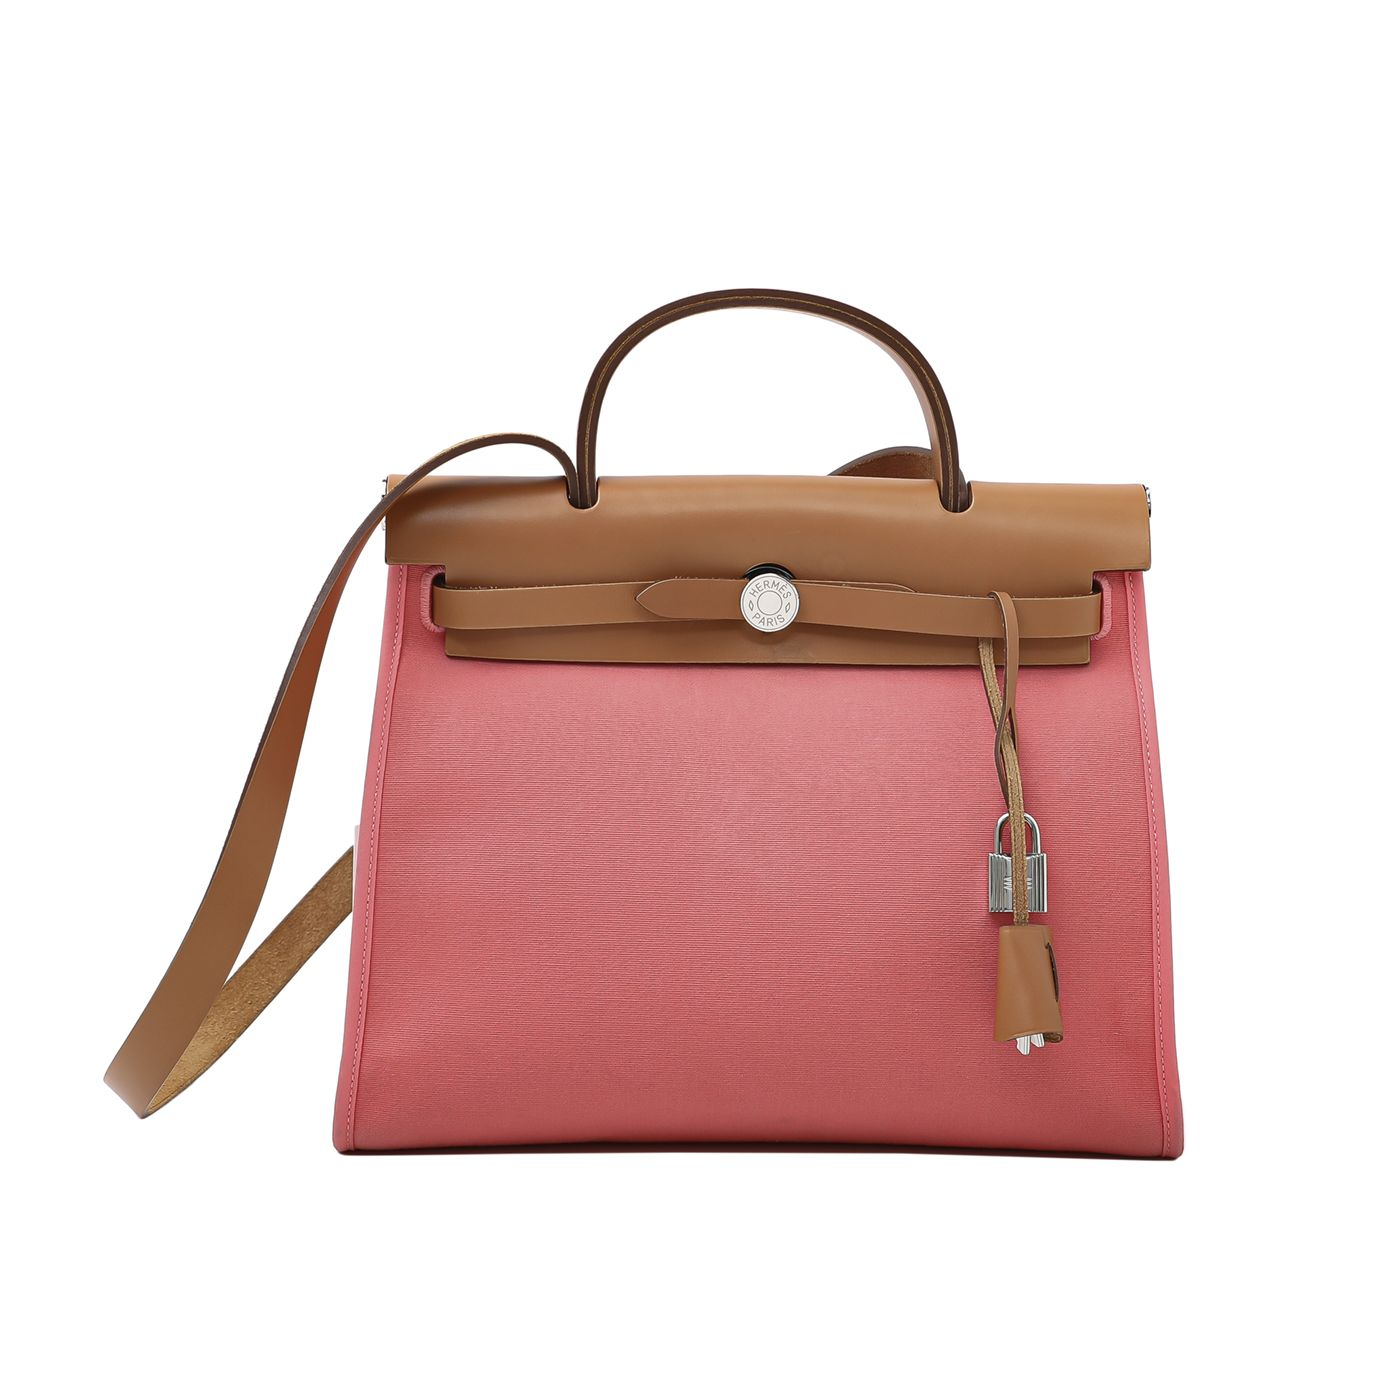 Hermes Rose Azalea Herbag PM Bag